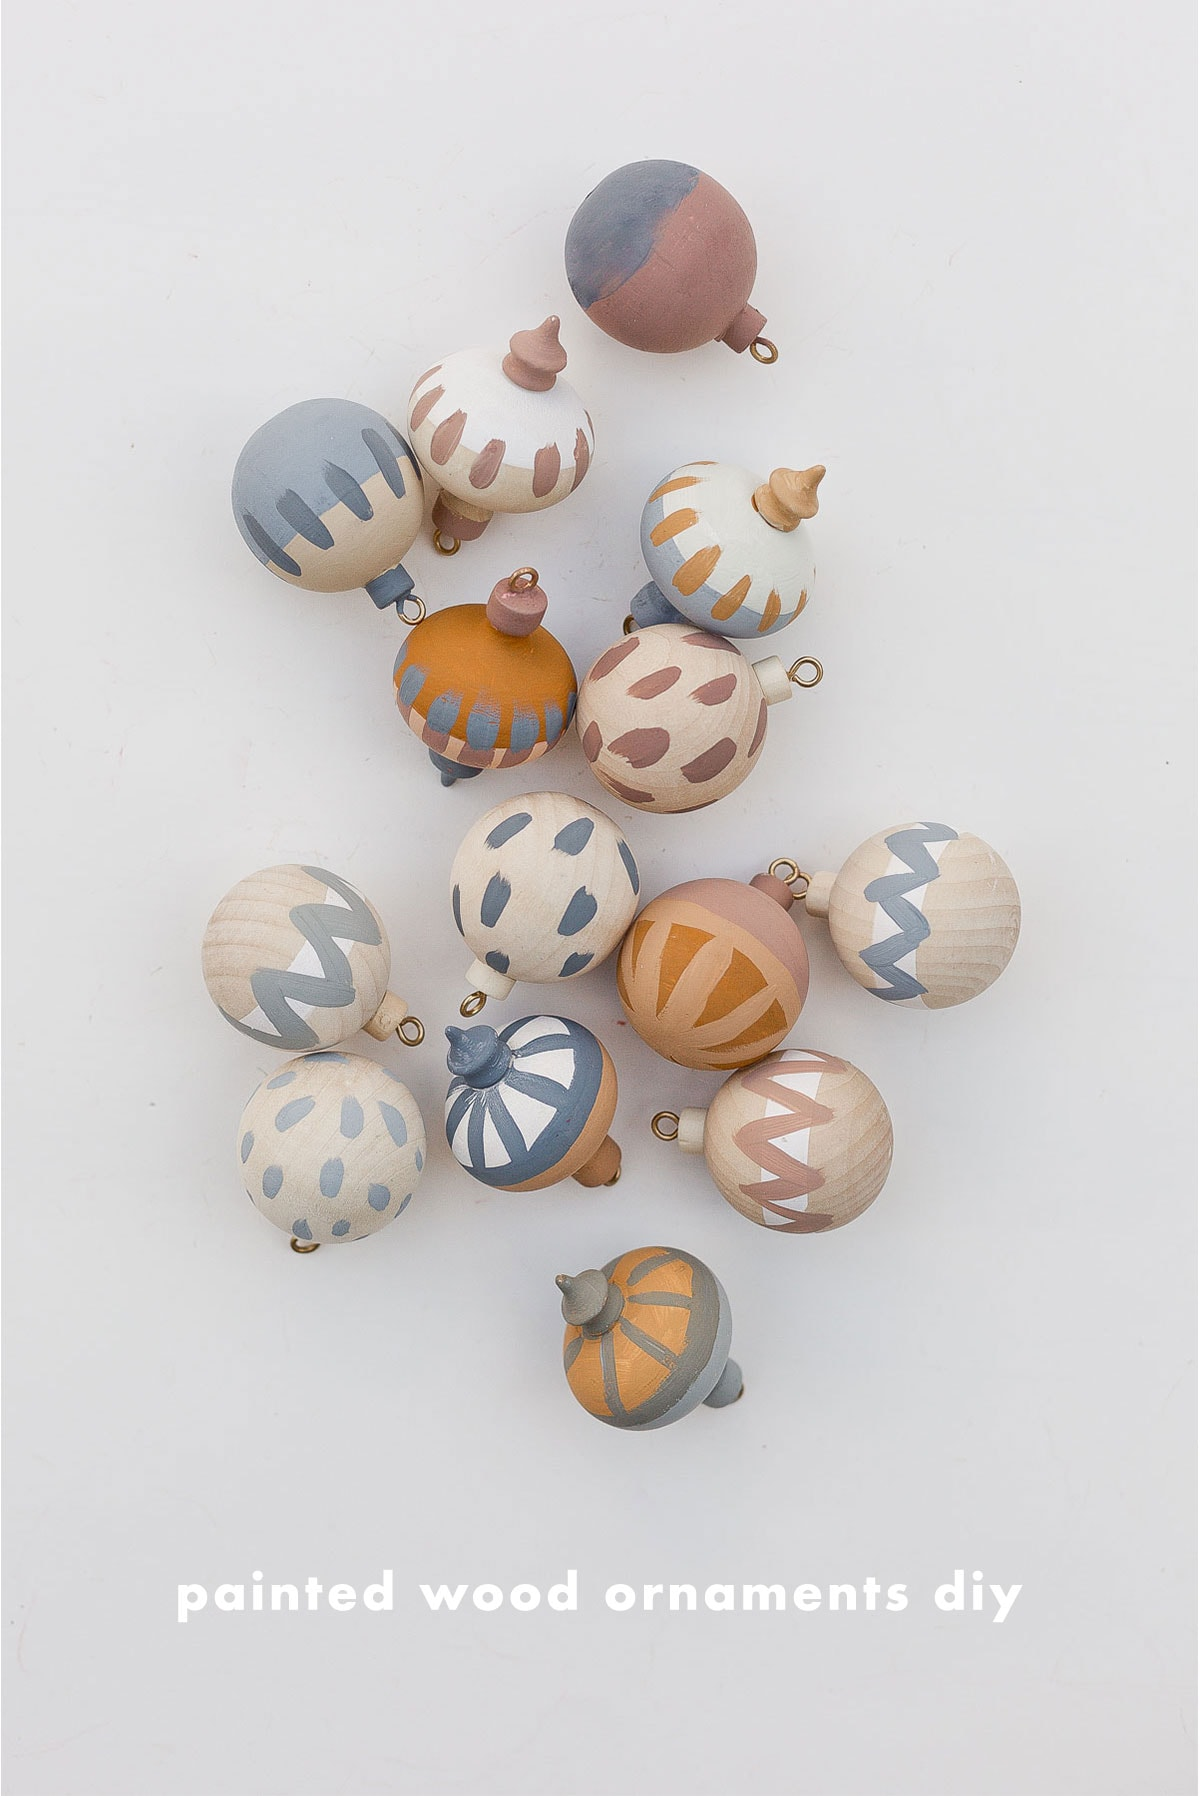 Hand painted wood ornaments in various globe shapes.